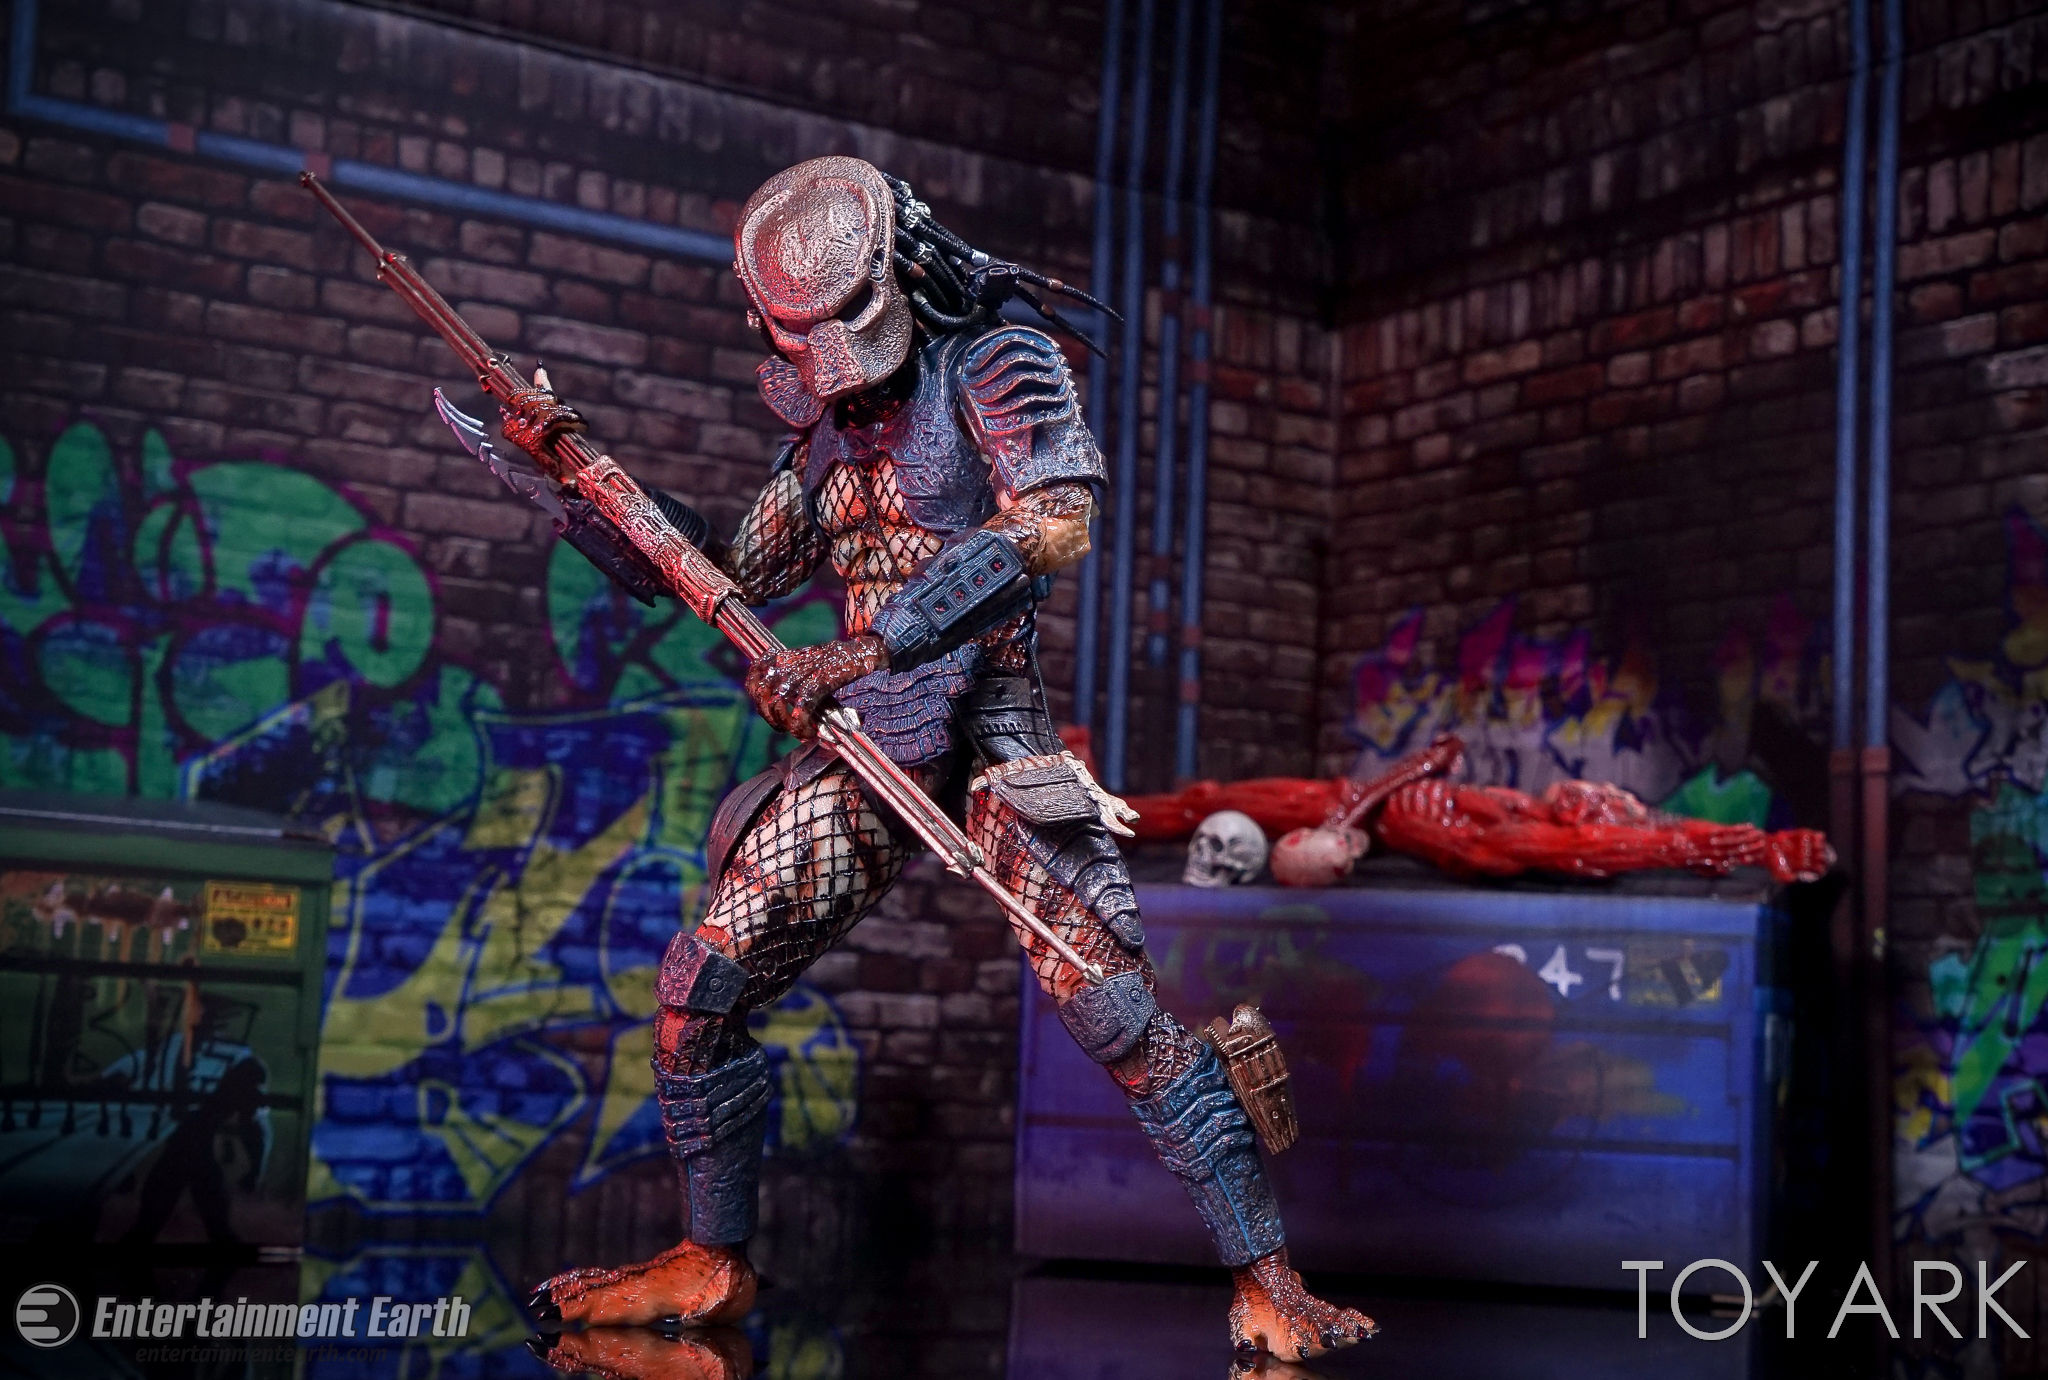 http://news.toyark.com/wp-content/uploads/sites/4/2017/03/NECA-Ultimate-City-Hunter-Predator-052.jpg